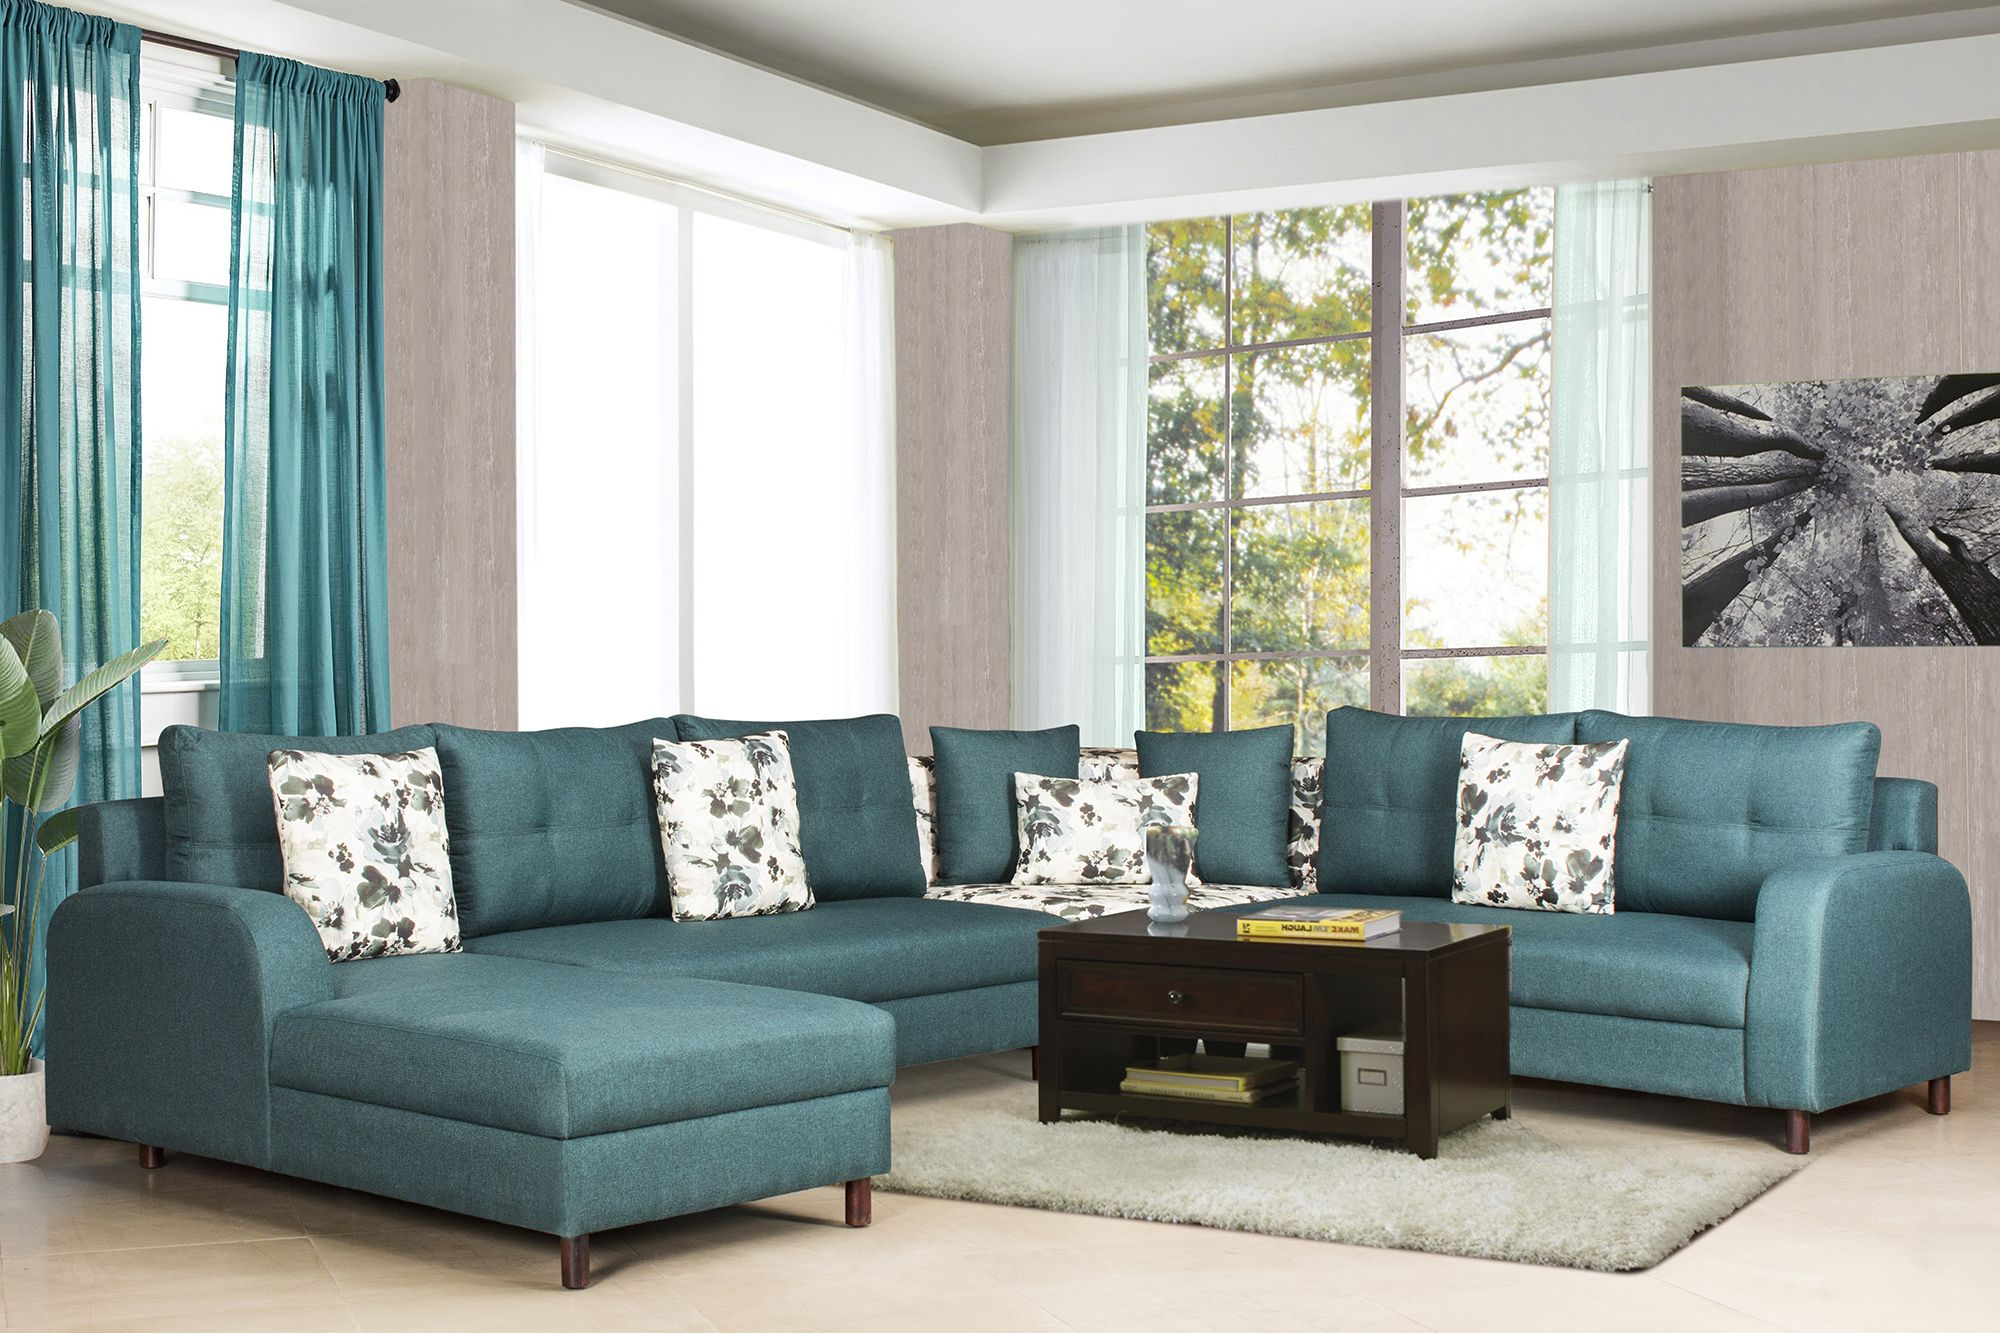 Recliner Sofa Kirti Nagar A La Carte Blue Fabric Corner Sofa Set Mrp Rs 149 000 00 Offer